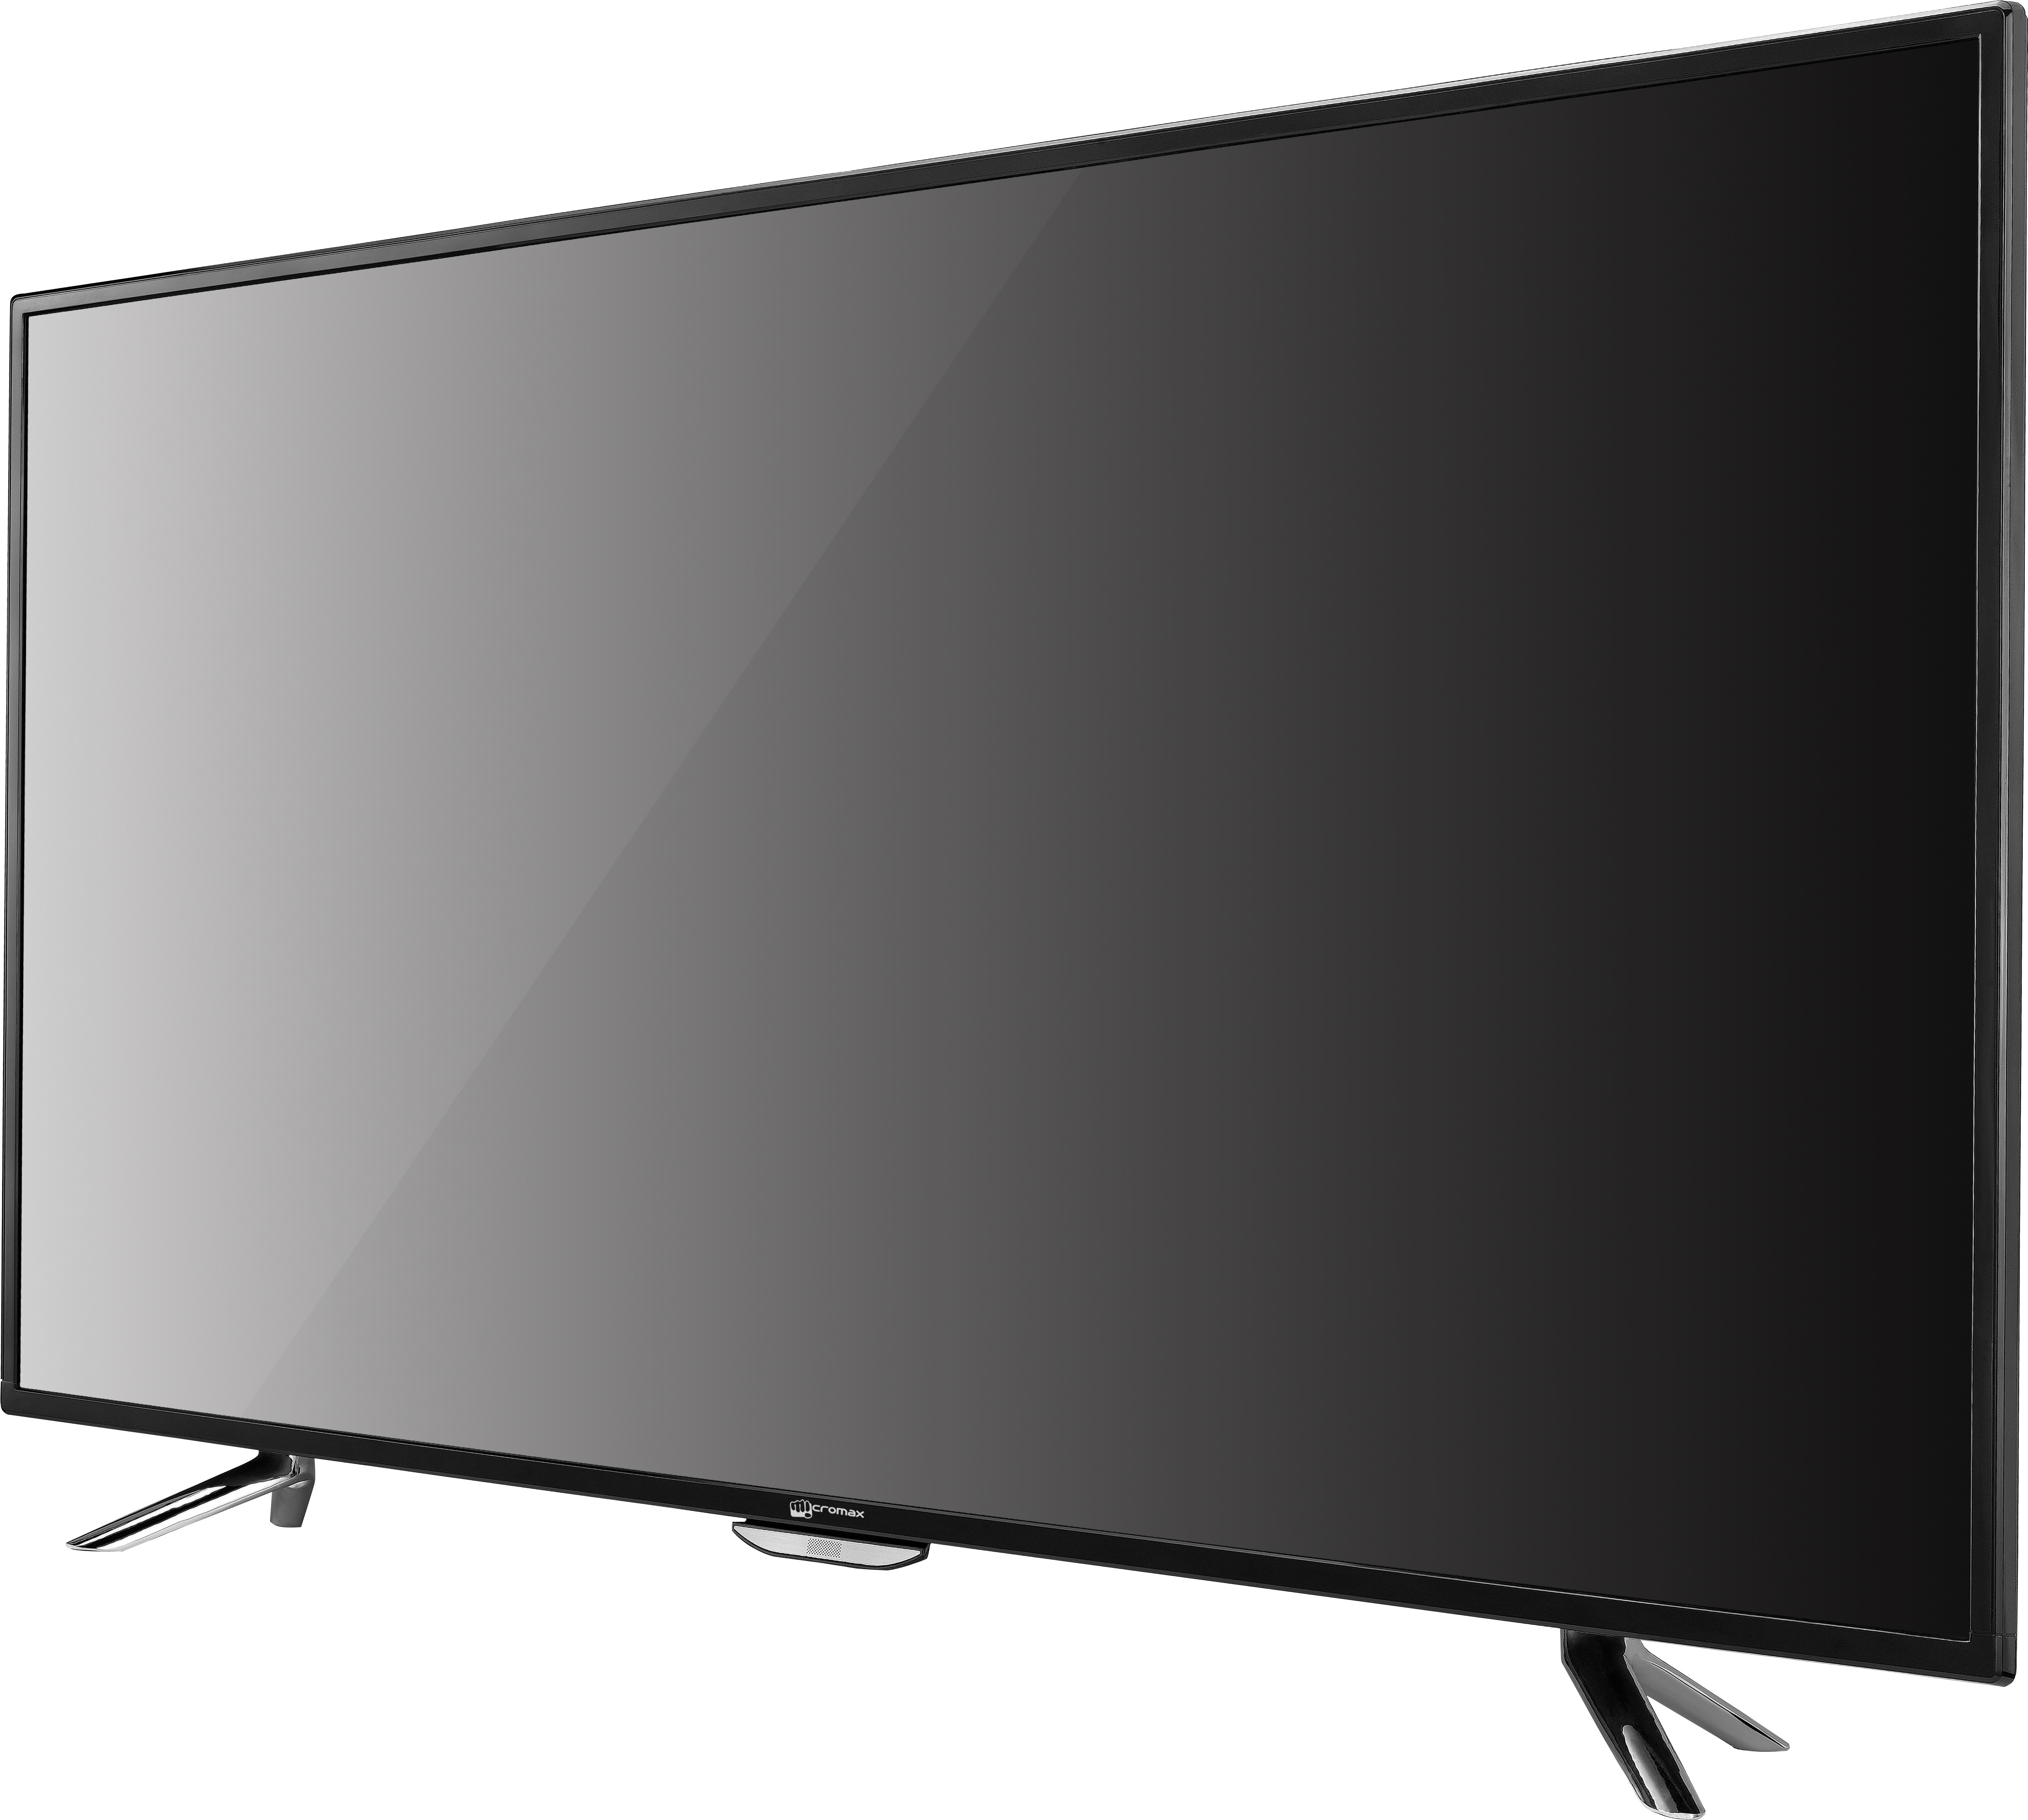 buy micromax 50c1200fhd 50c5500fhd 124 cm 49 led tv online at best prices in india. Black Bedroom Furniture Sets. Home Design Ideas